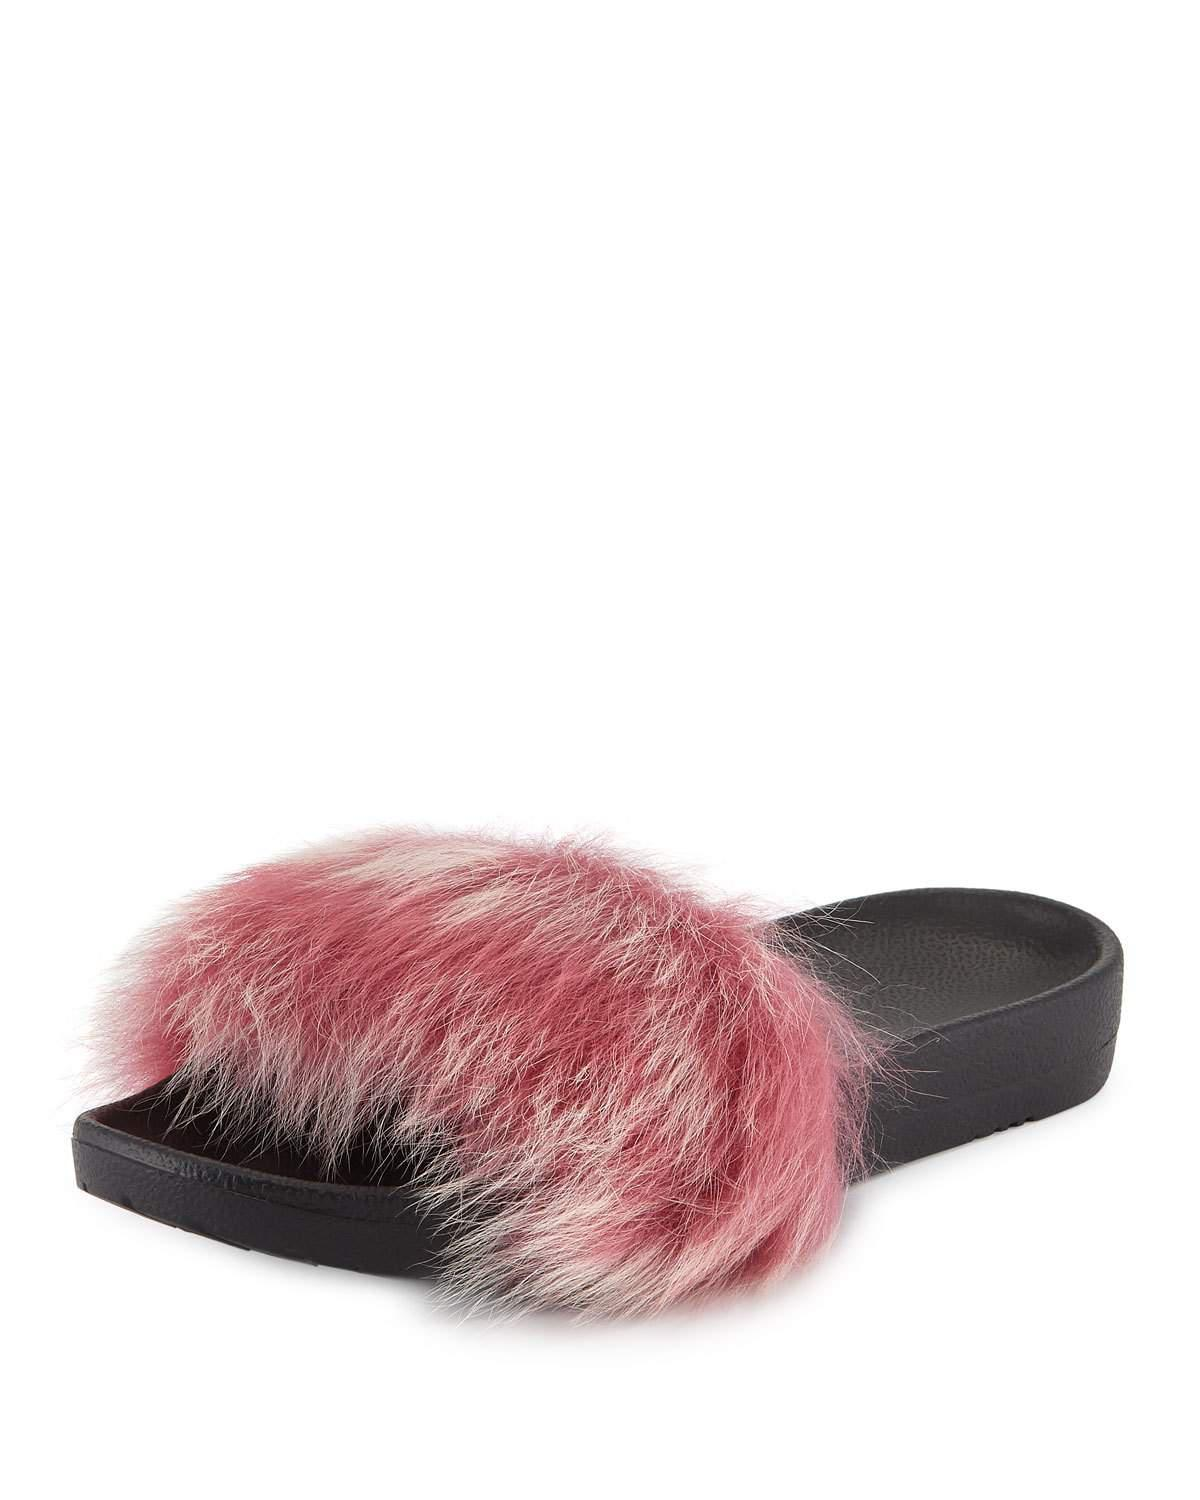 UGG Royale Slide(Women's) -White Toscana Largest Supplier Buy Cheap Professional Buy Cheap 100% Authentic Free Shipping Cheapest Price BJRUp